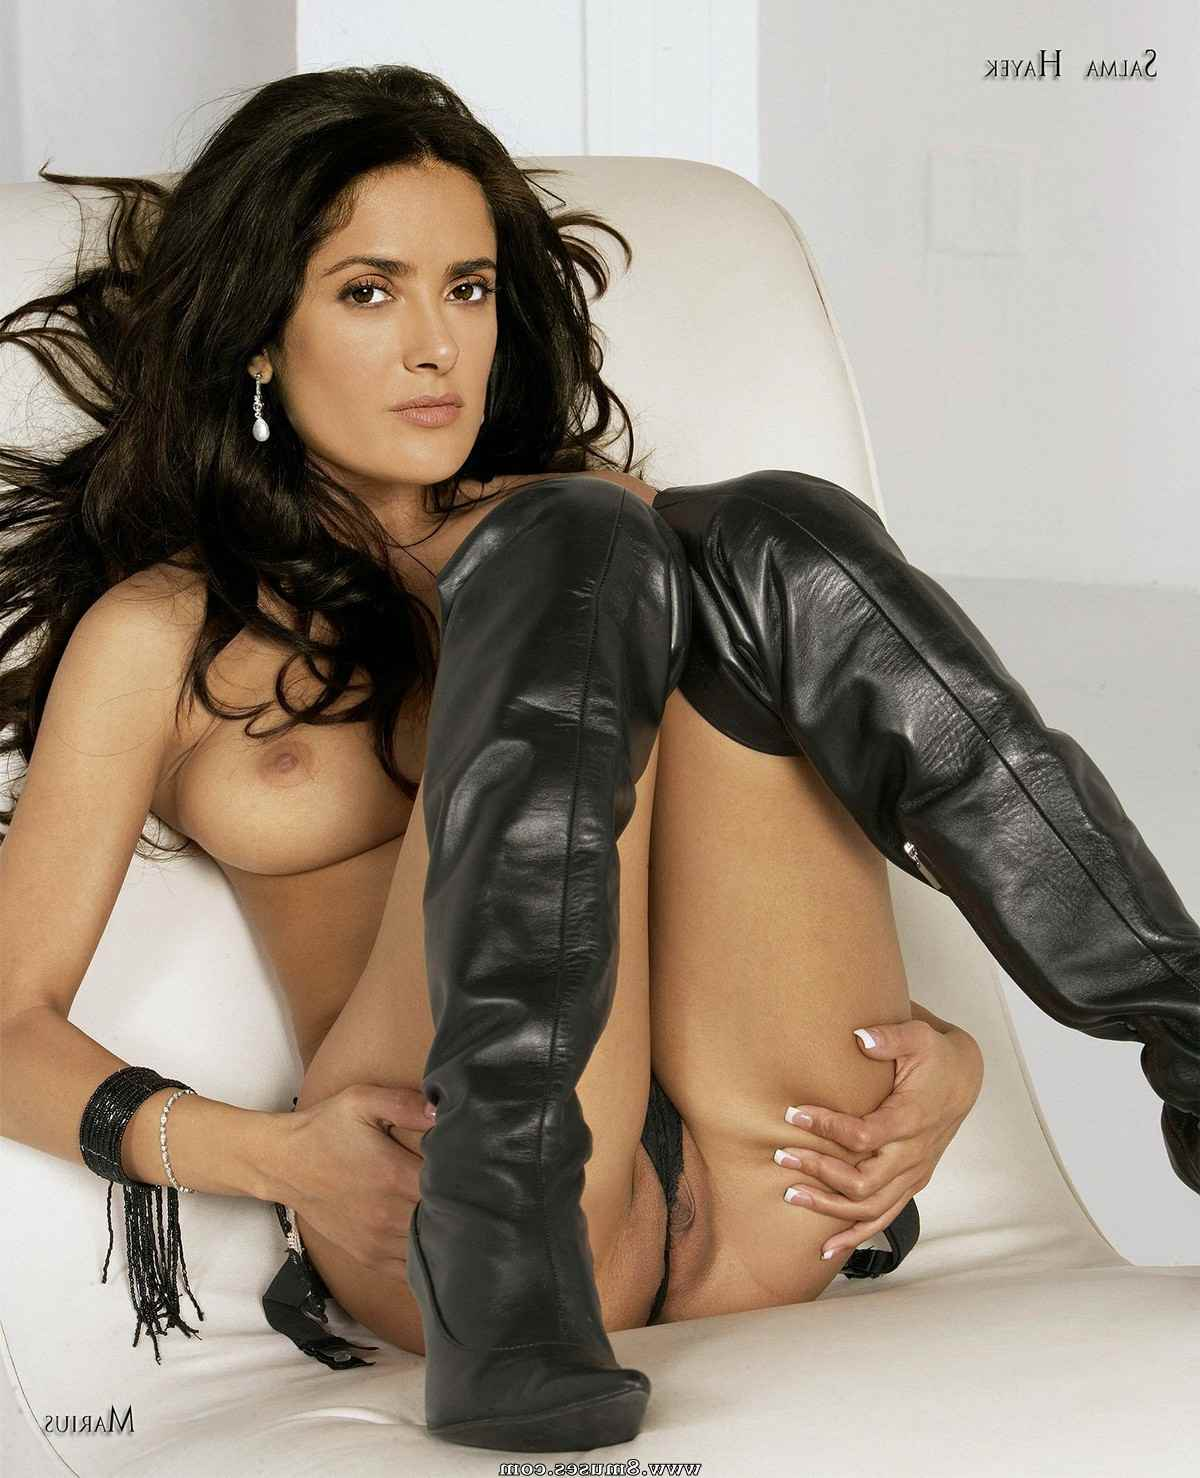 Fake-Celebrities-Sex-Pictures/Salma-Hayek Salma_Hayek__8muses_-_Sex_and_Porn_Comics_107.jpg